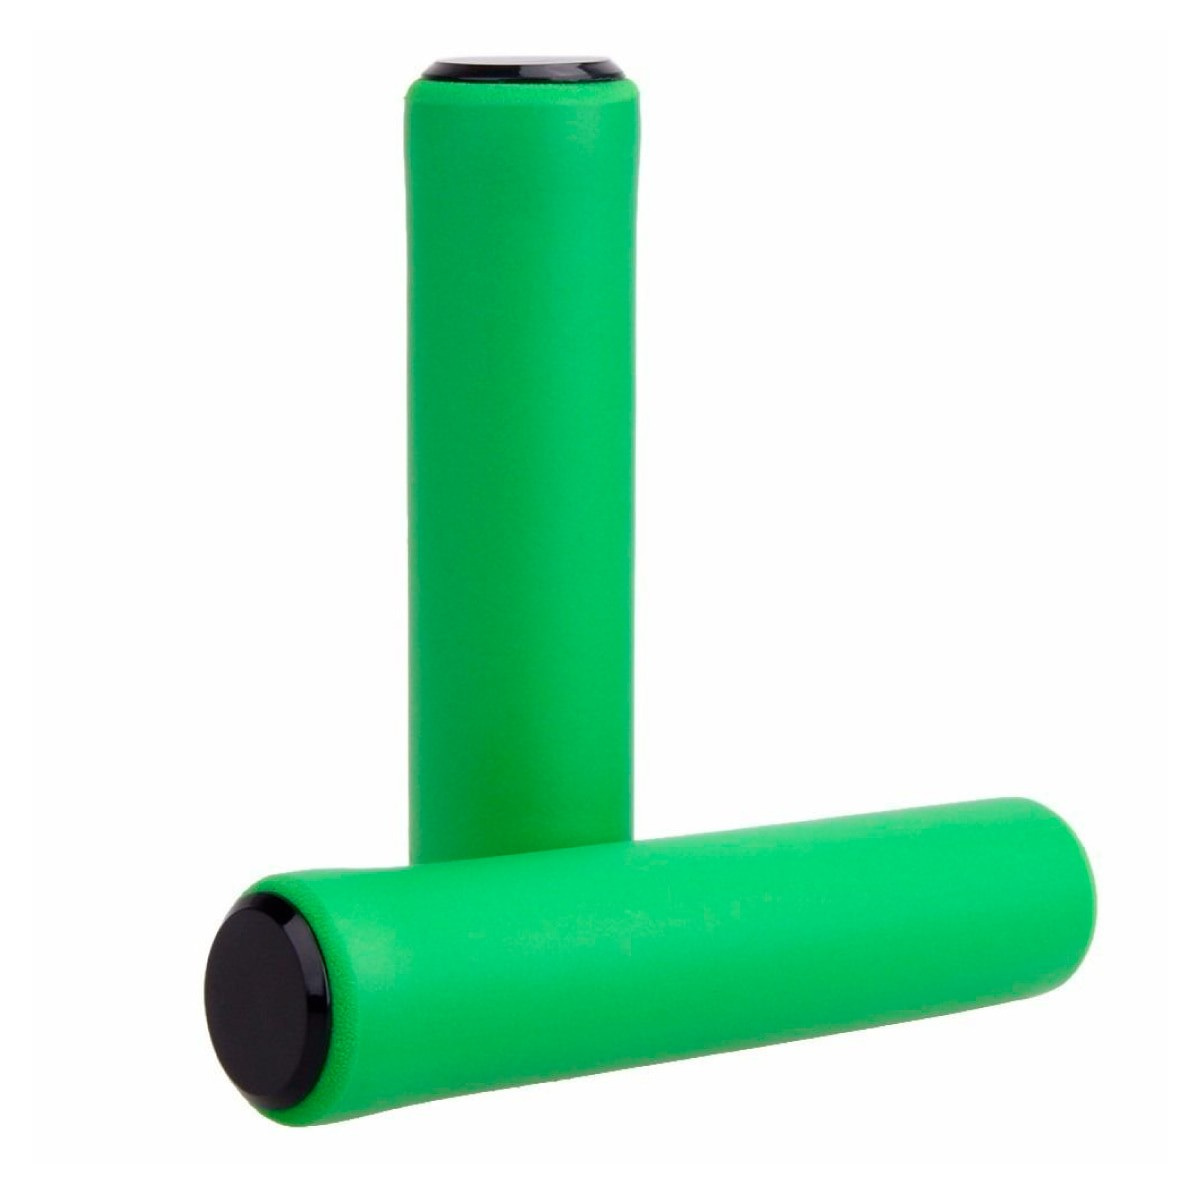 Manopla Silicone High One Verde